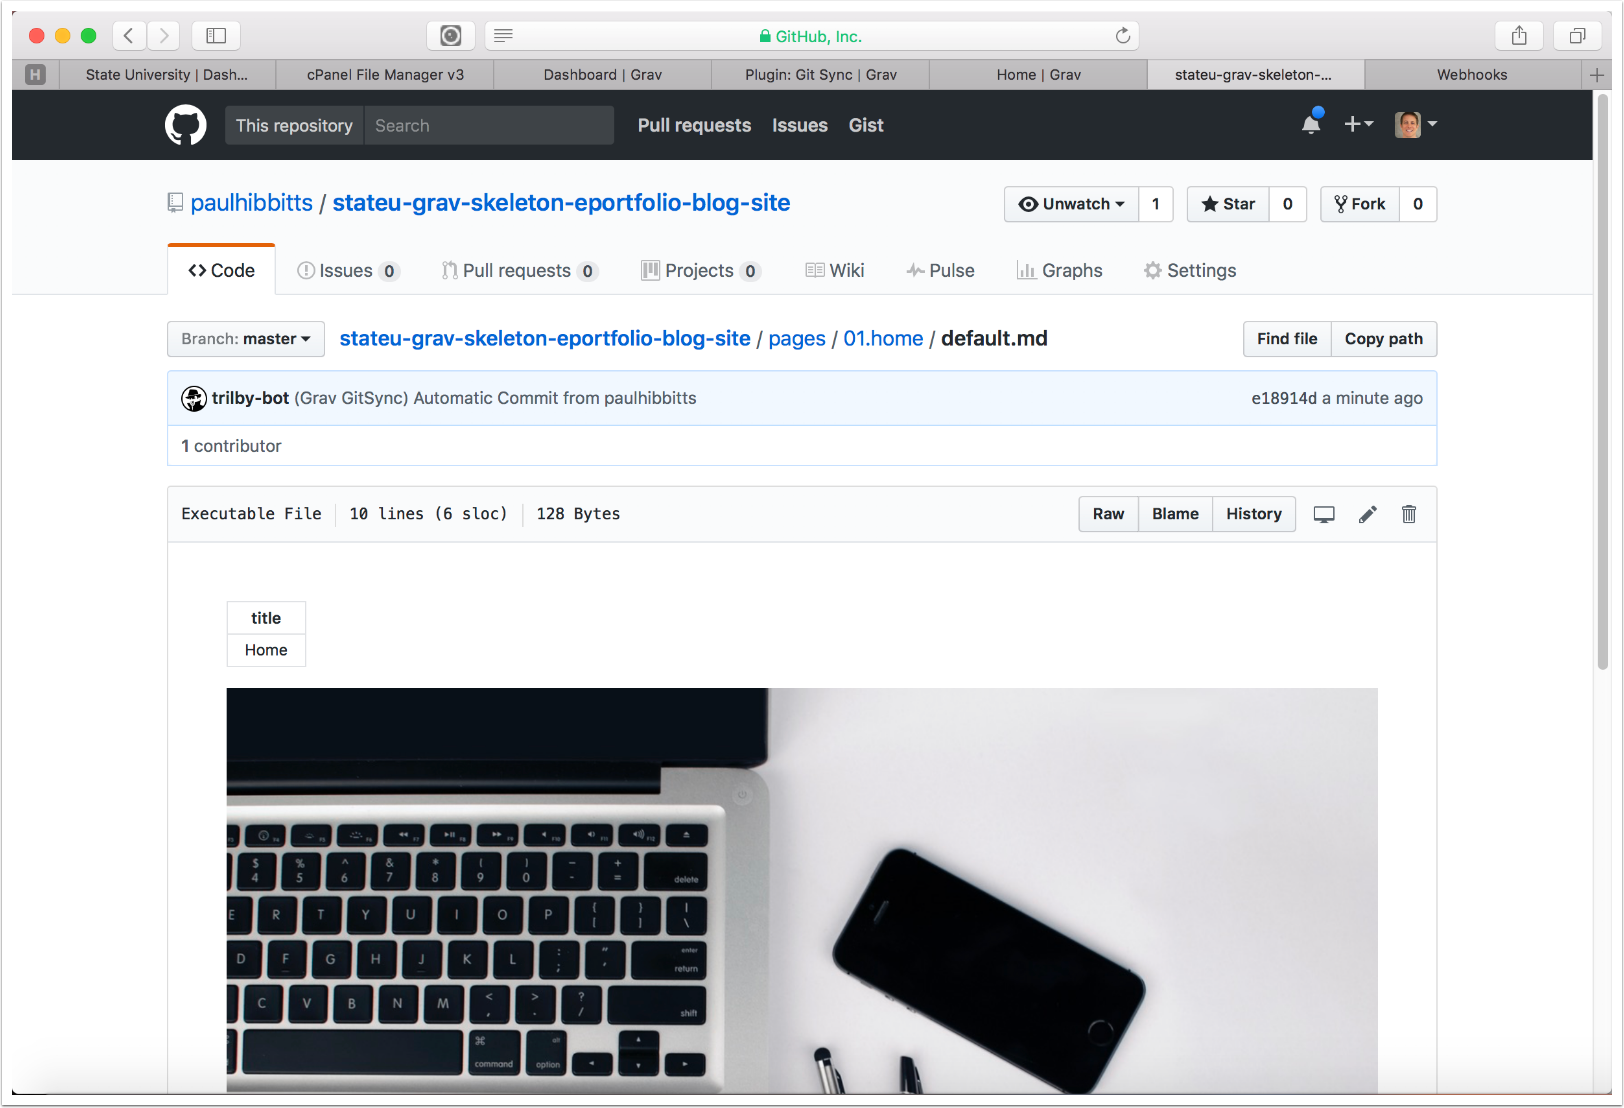 3.28 The content of the ePortfolio Blog homepage is now displayed in GitHub